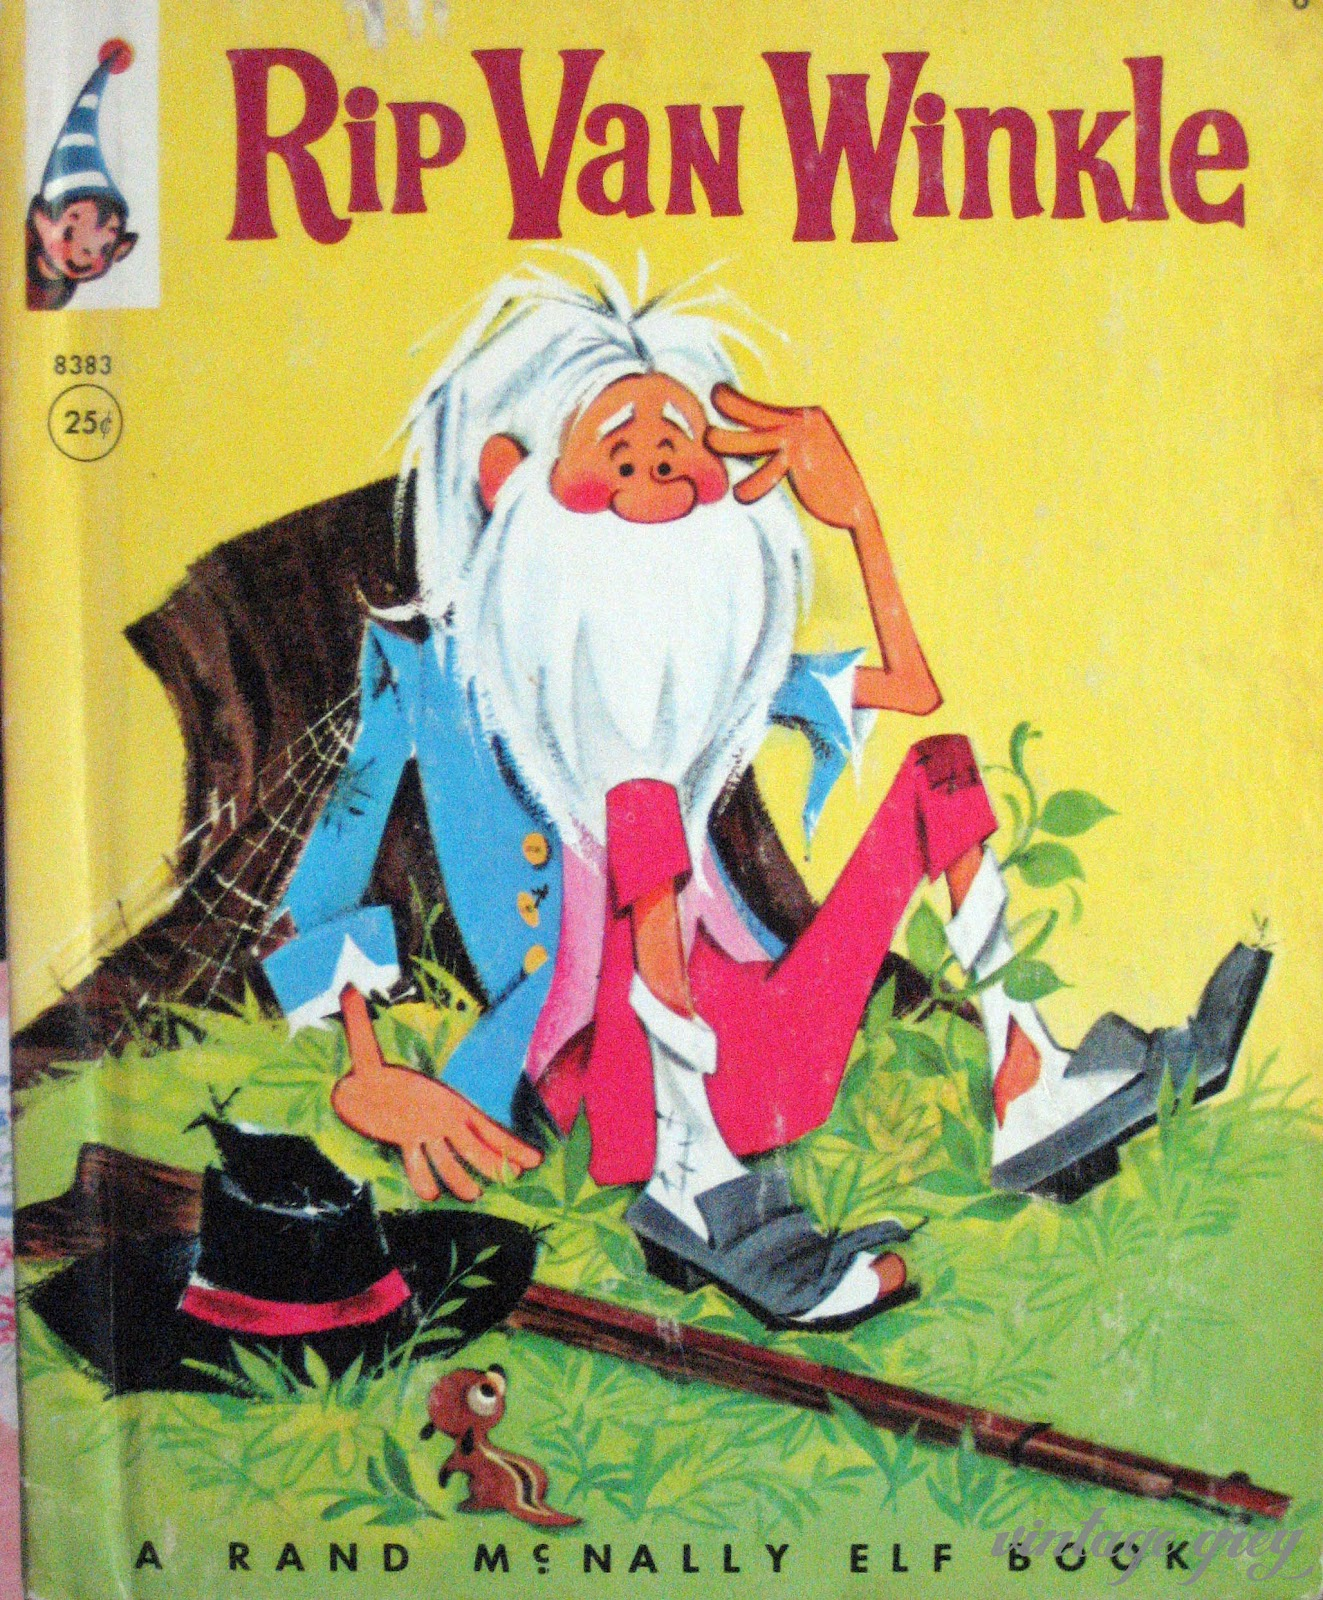 rip van winkle character essay Rip van winkle an american myth washington irving helped create an american mythology with his story rip van winkle irving created a nations mythology.